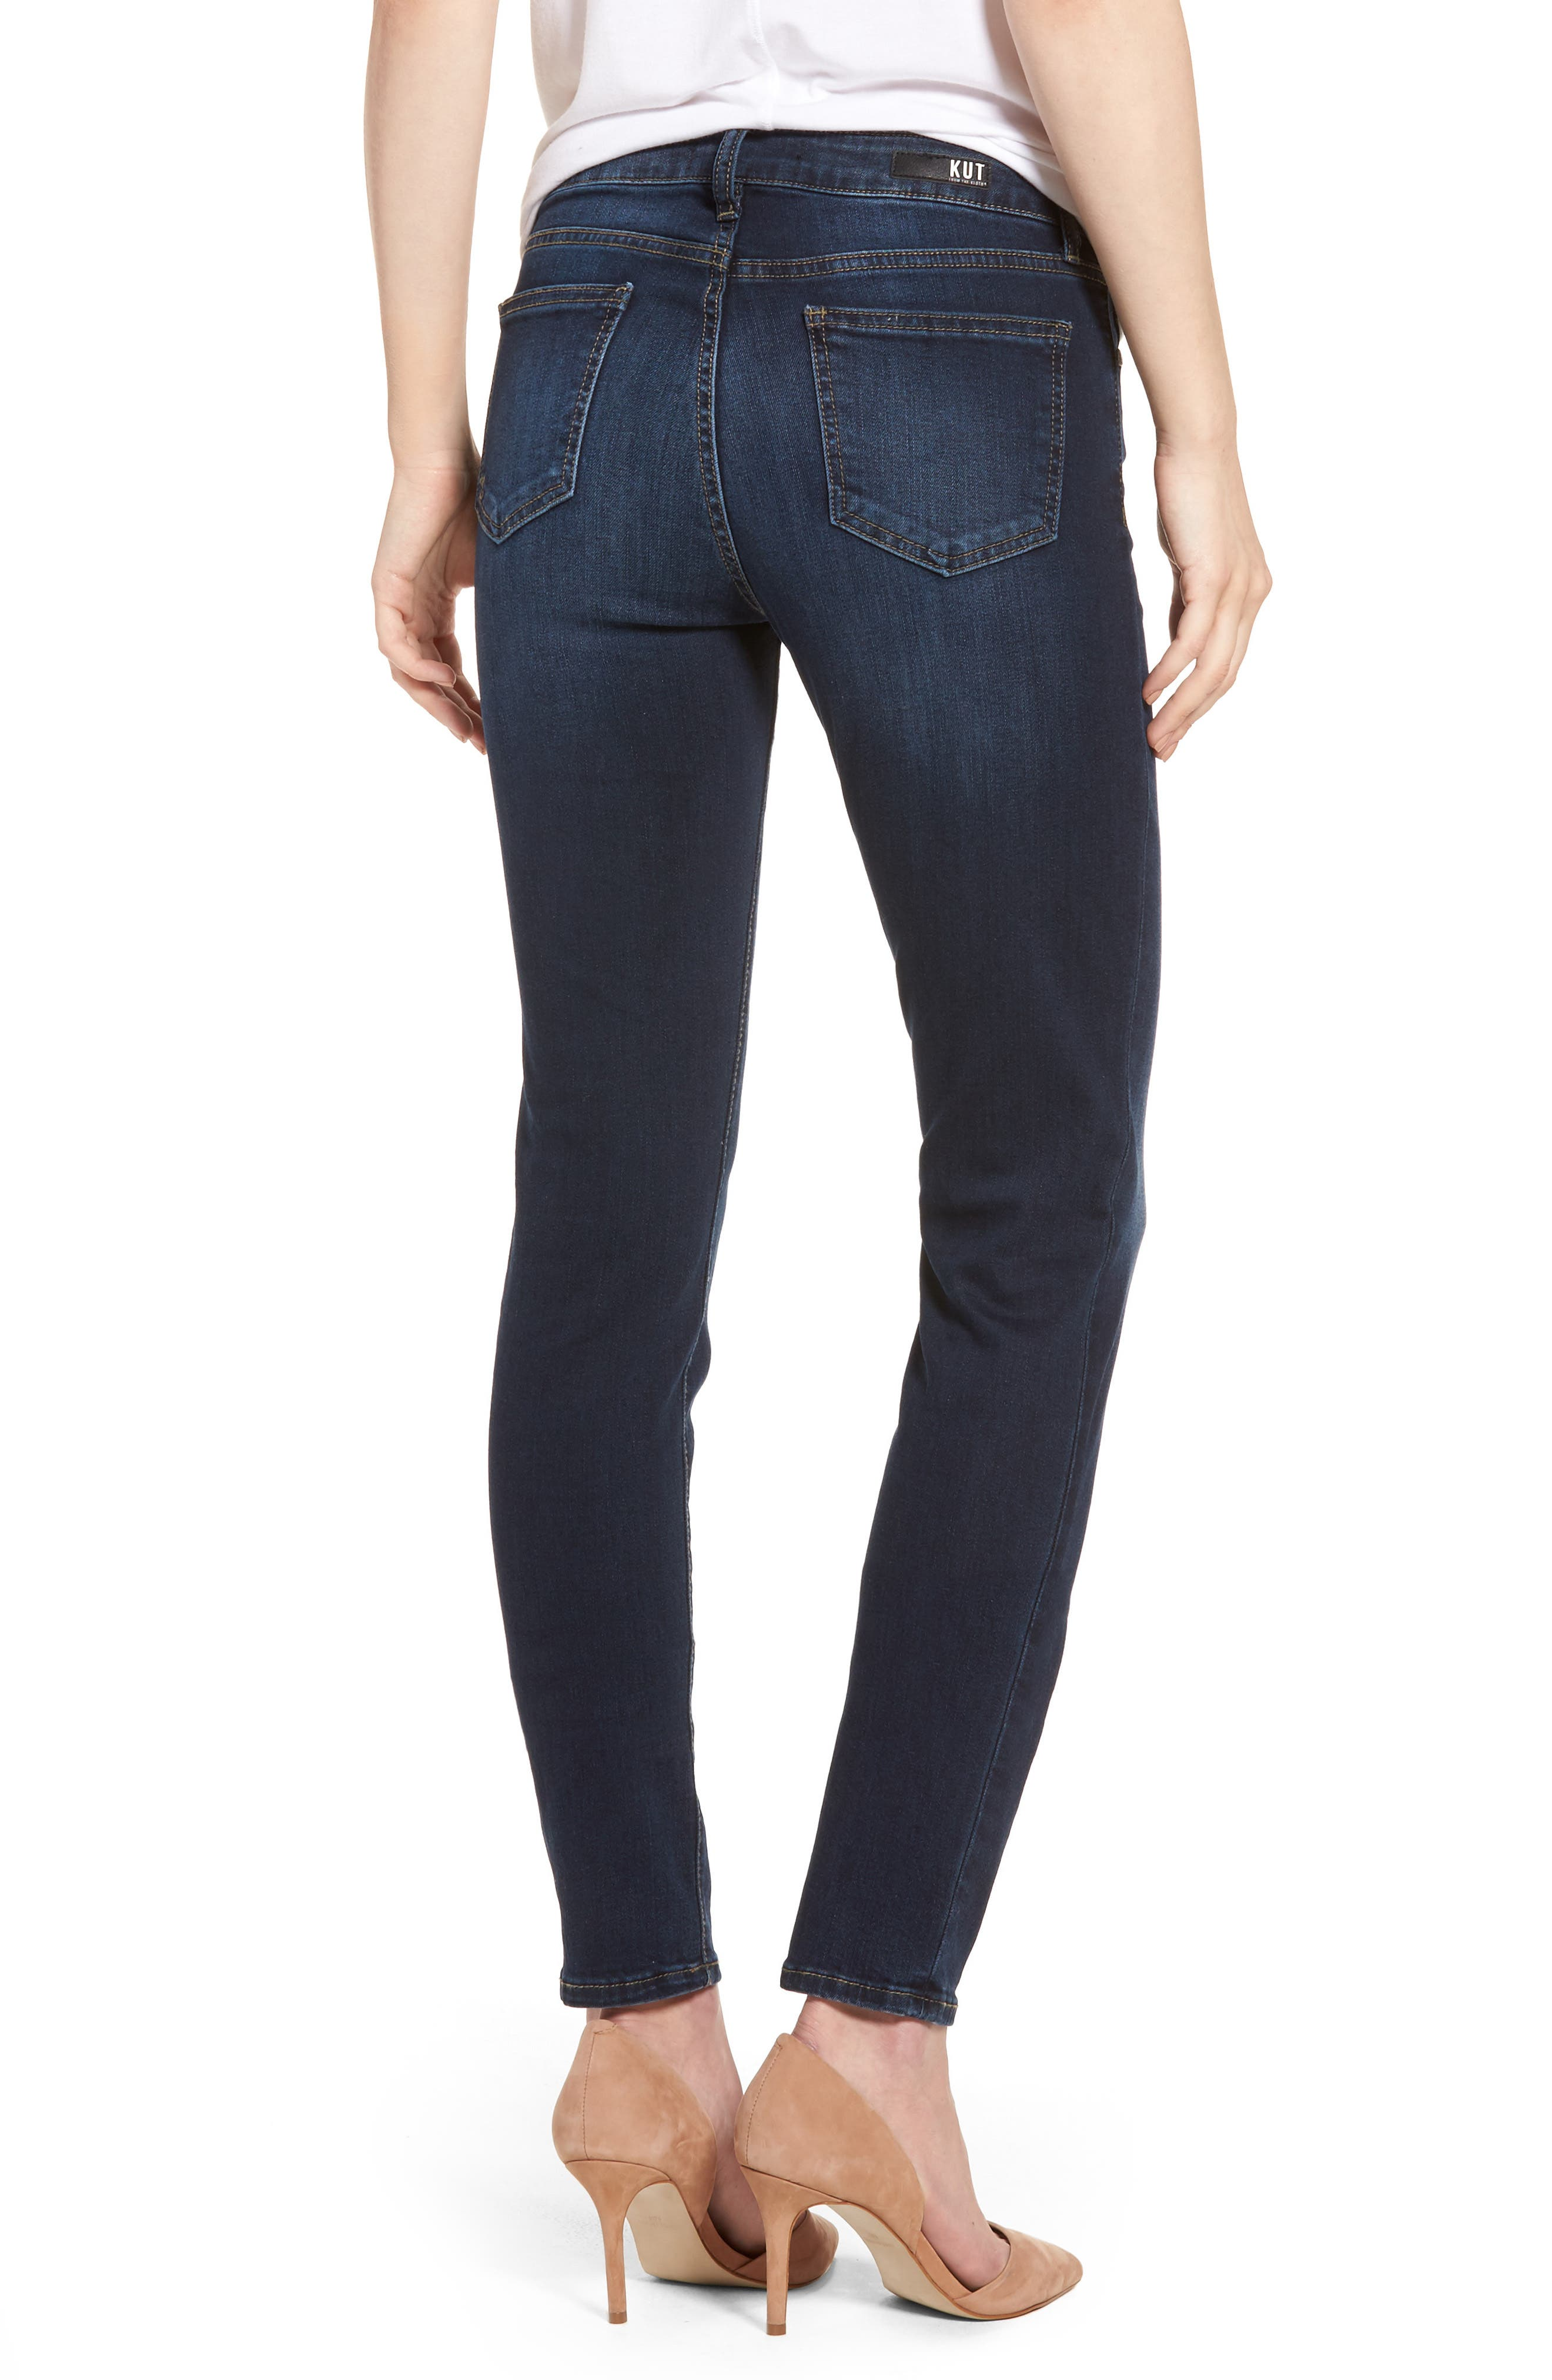 Diana Curvy Fit Skinny Jeans,                             Alternate thumbnail 2, color,                             473